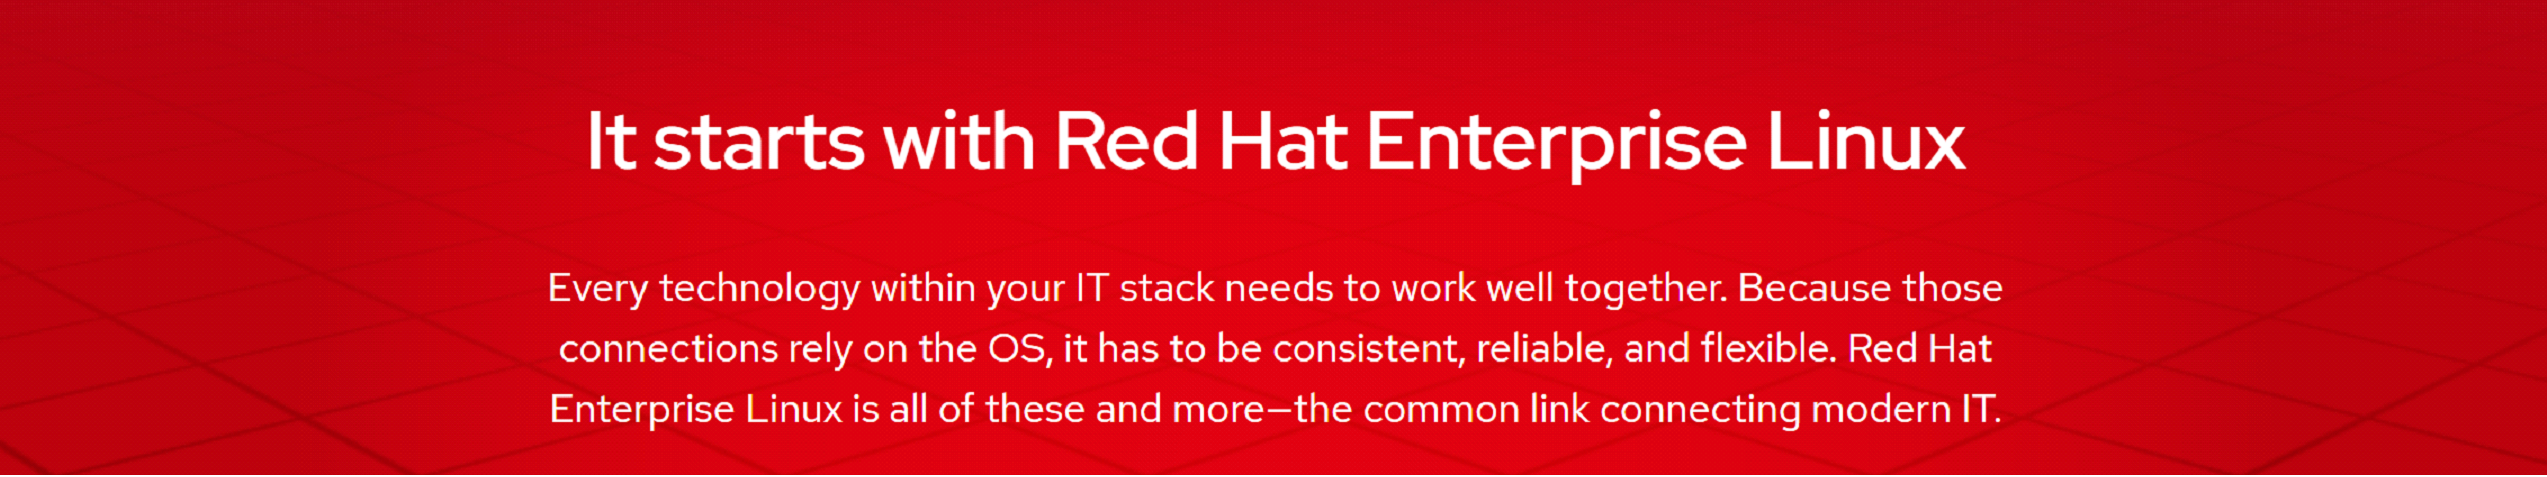 hat01.png